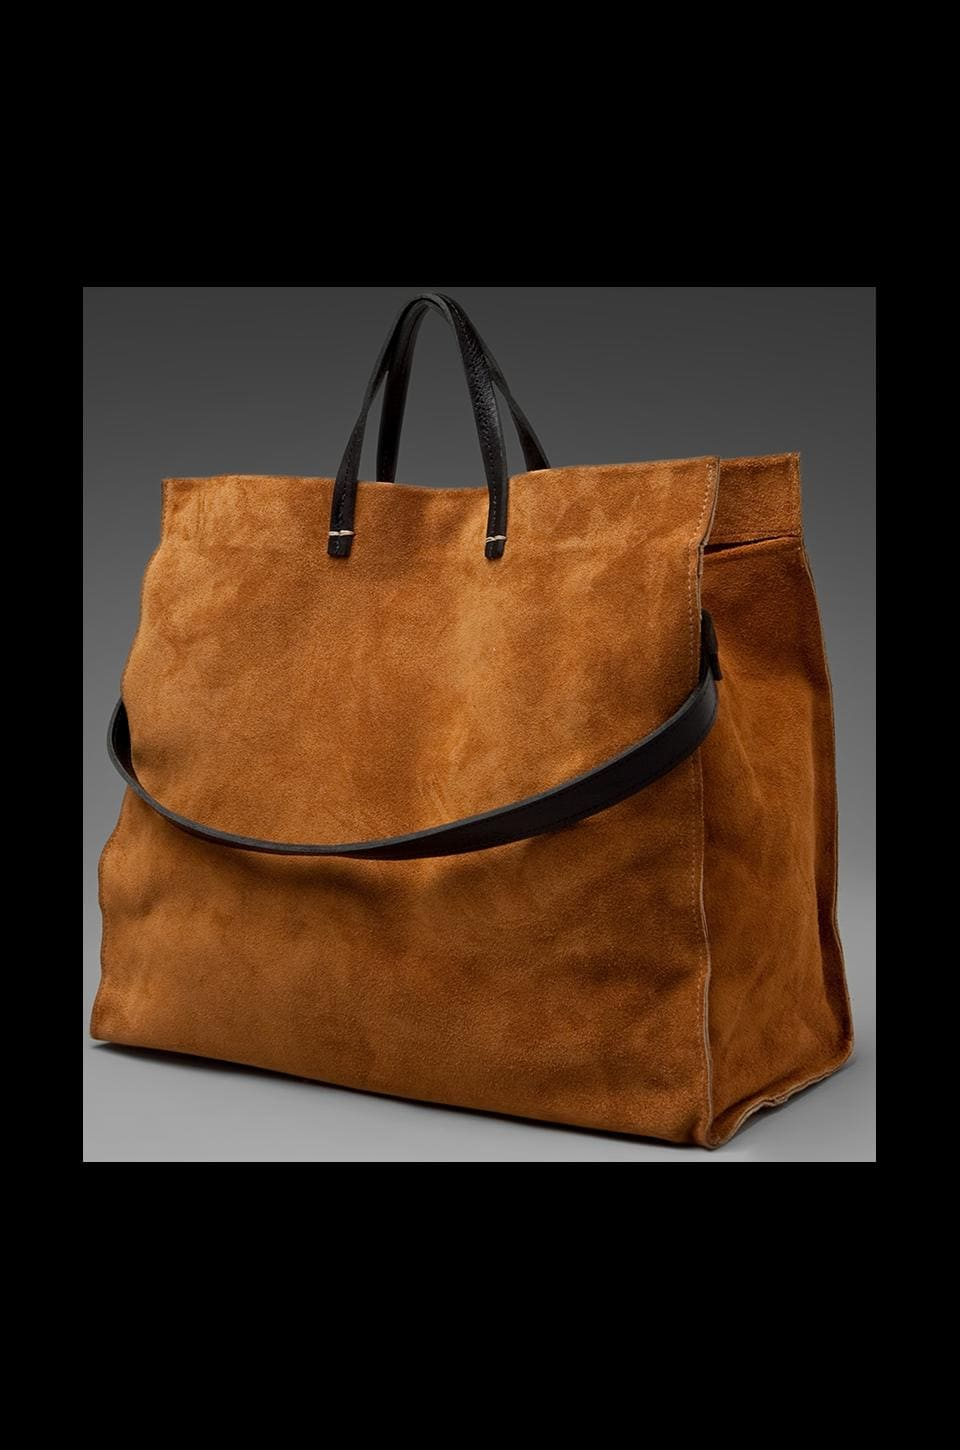 Clare V. Suede Tote in Camel